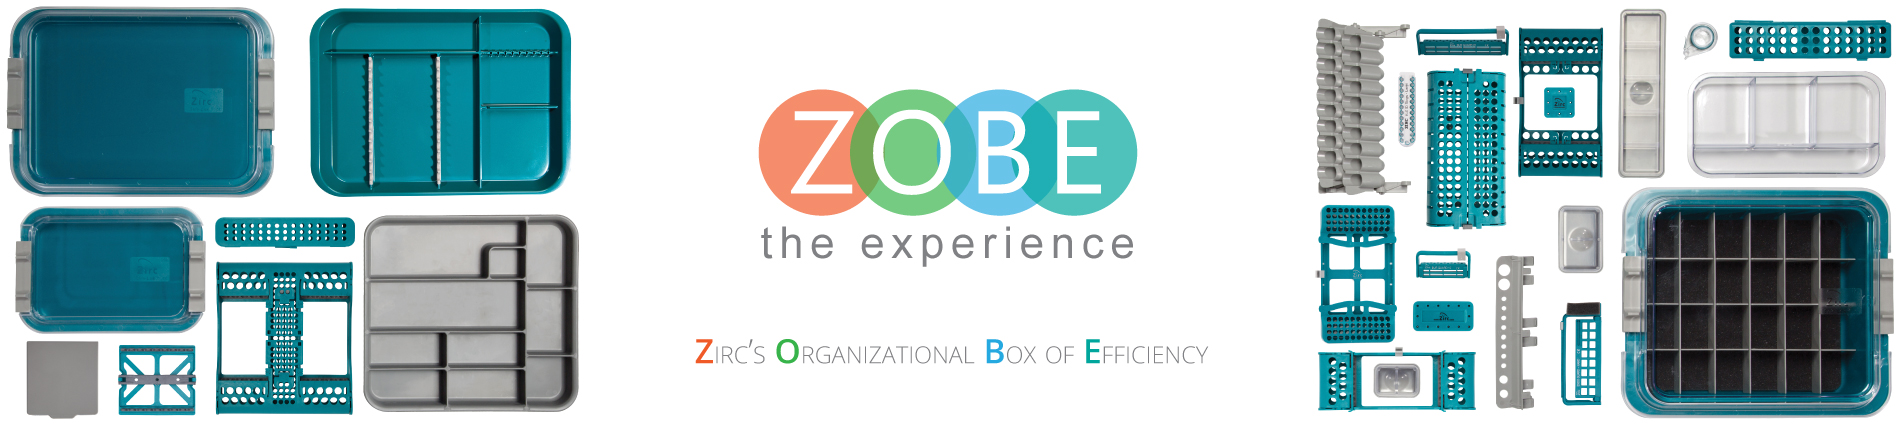 Zobe_Website_Banner.jpg